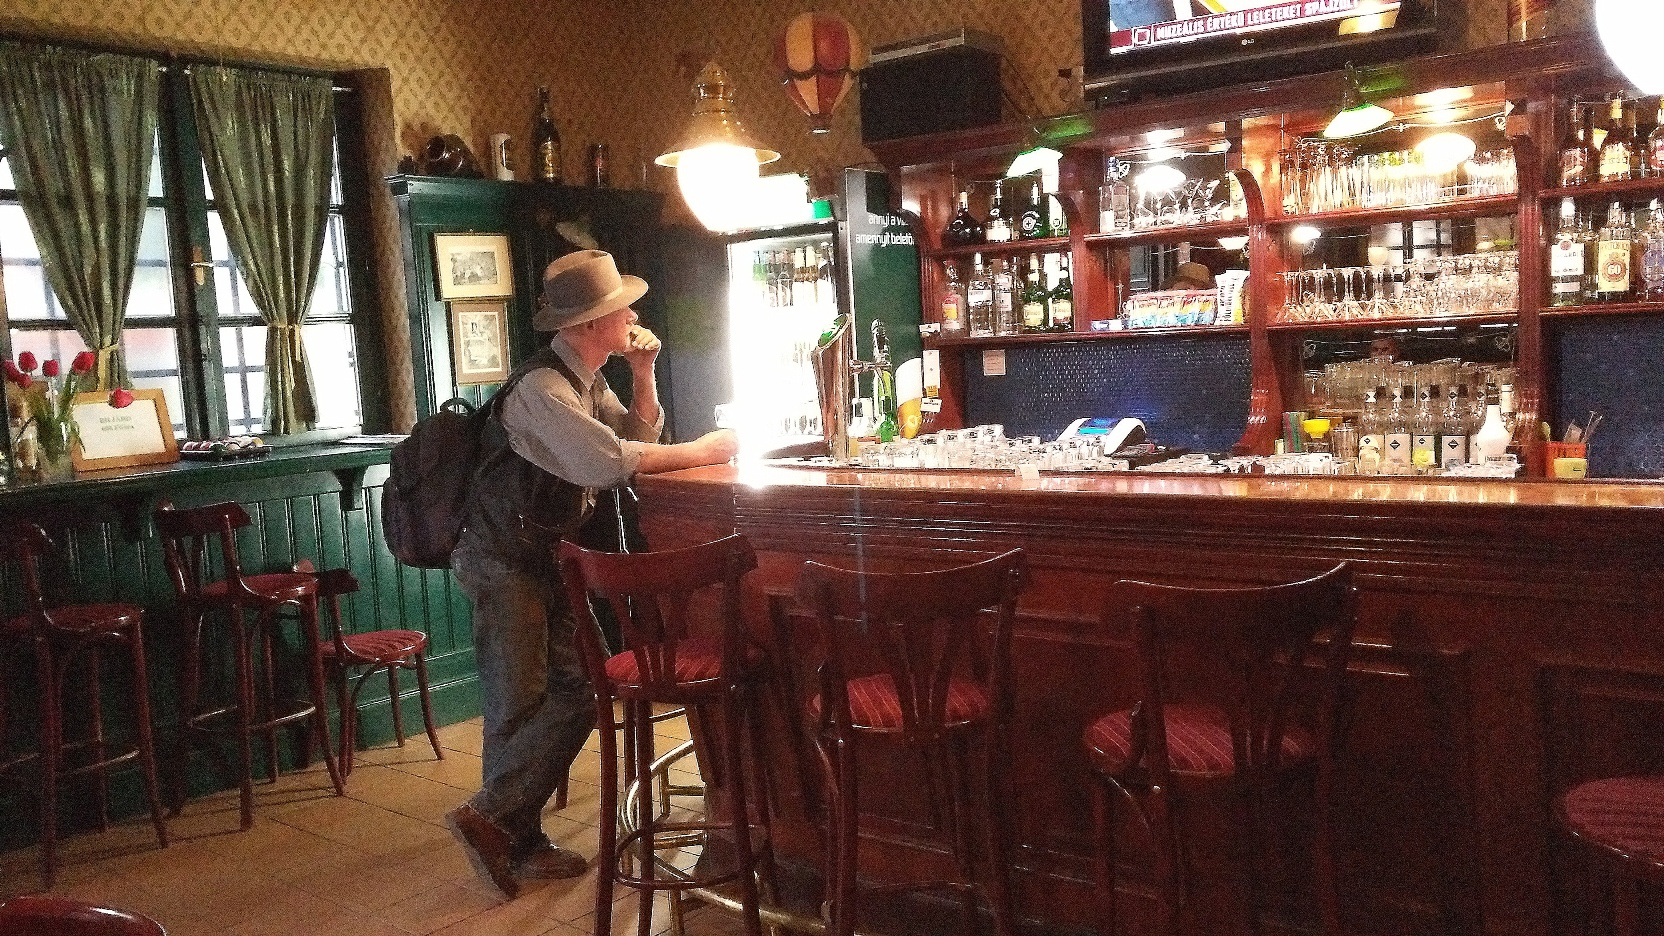 Science In The Pub - Pub Quizzes and Tours